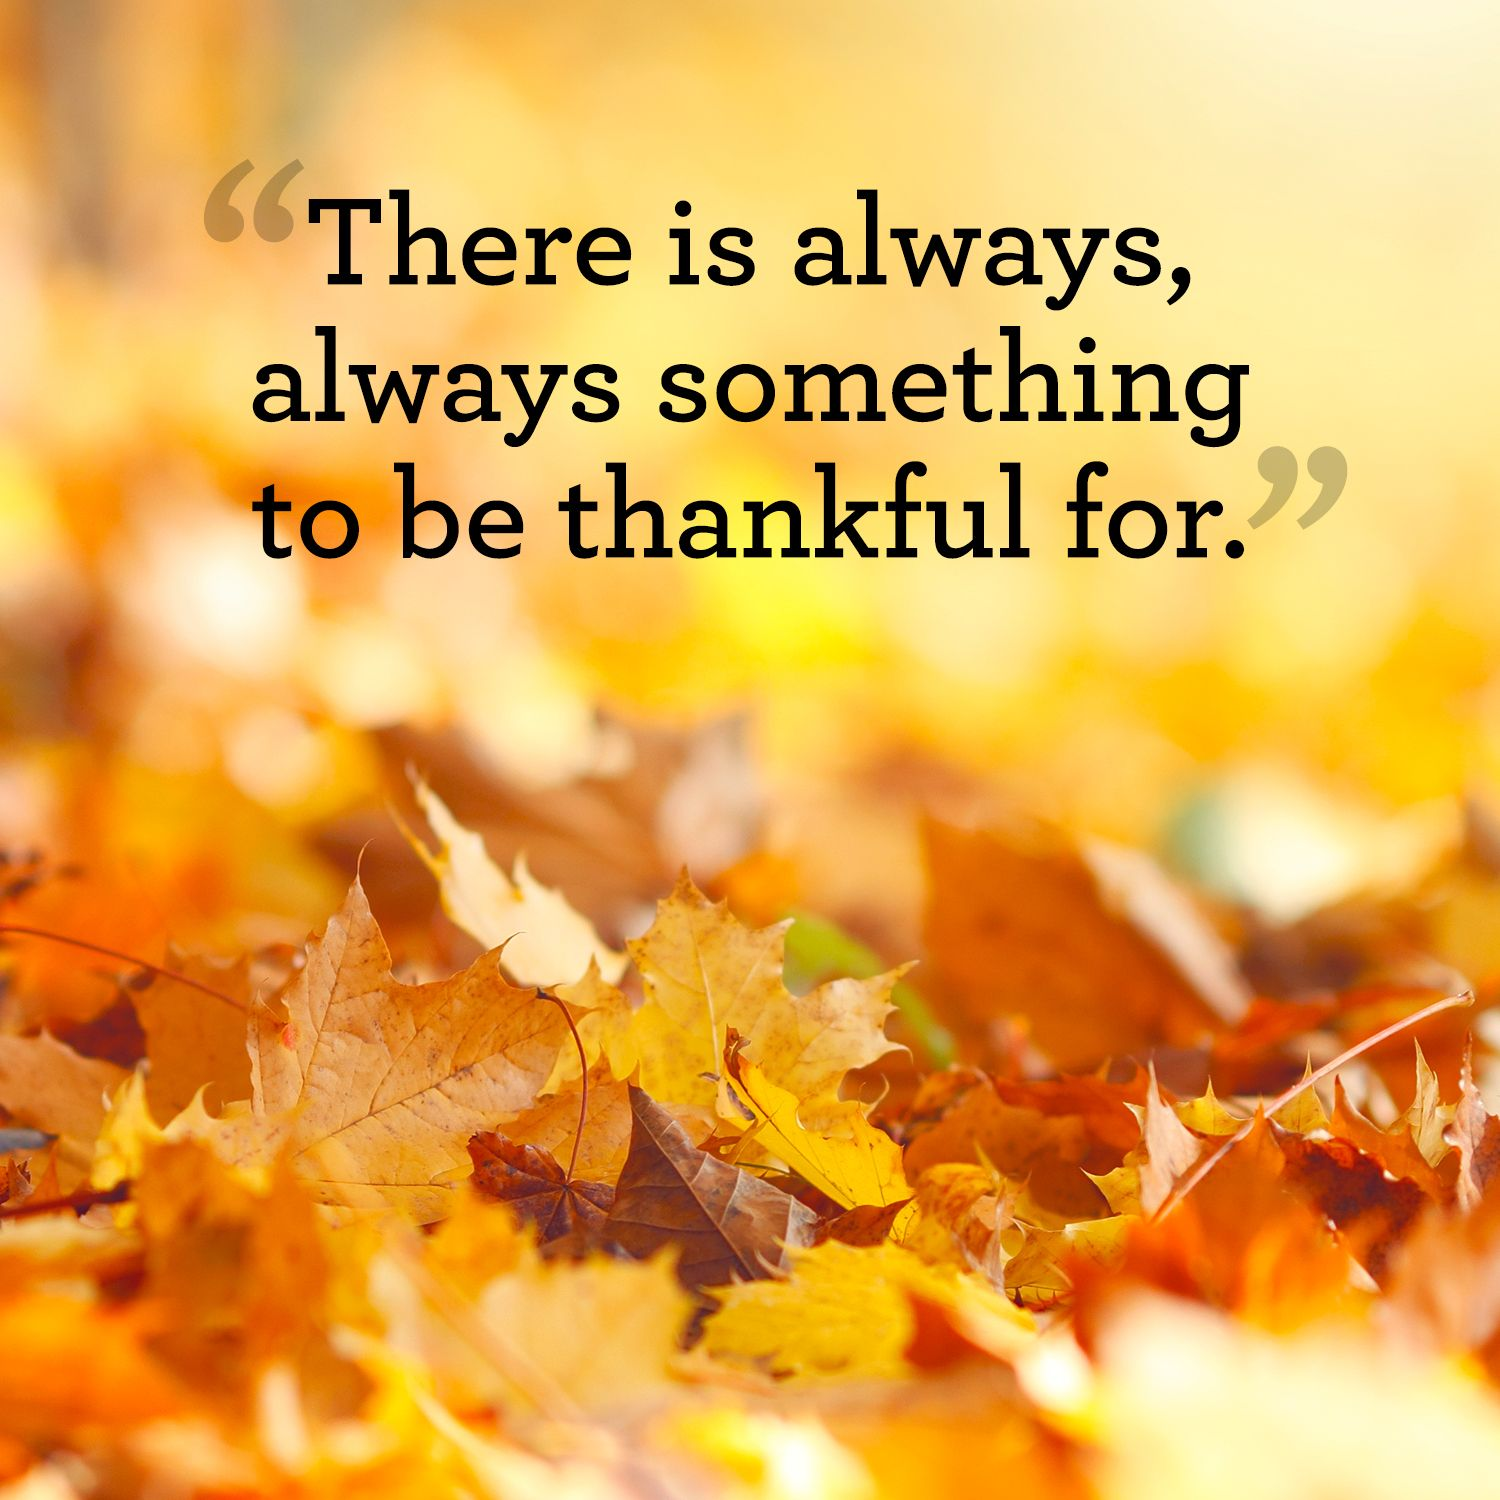 Be Thankful Quotes | 15 Best Thanksgiving Quotes Meaningful Thanksgiving Sayings